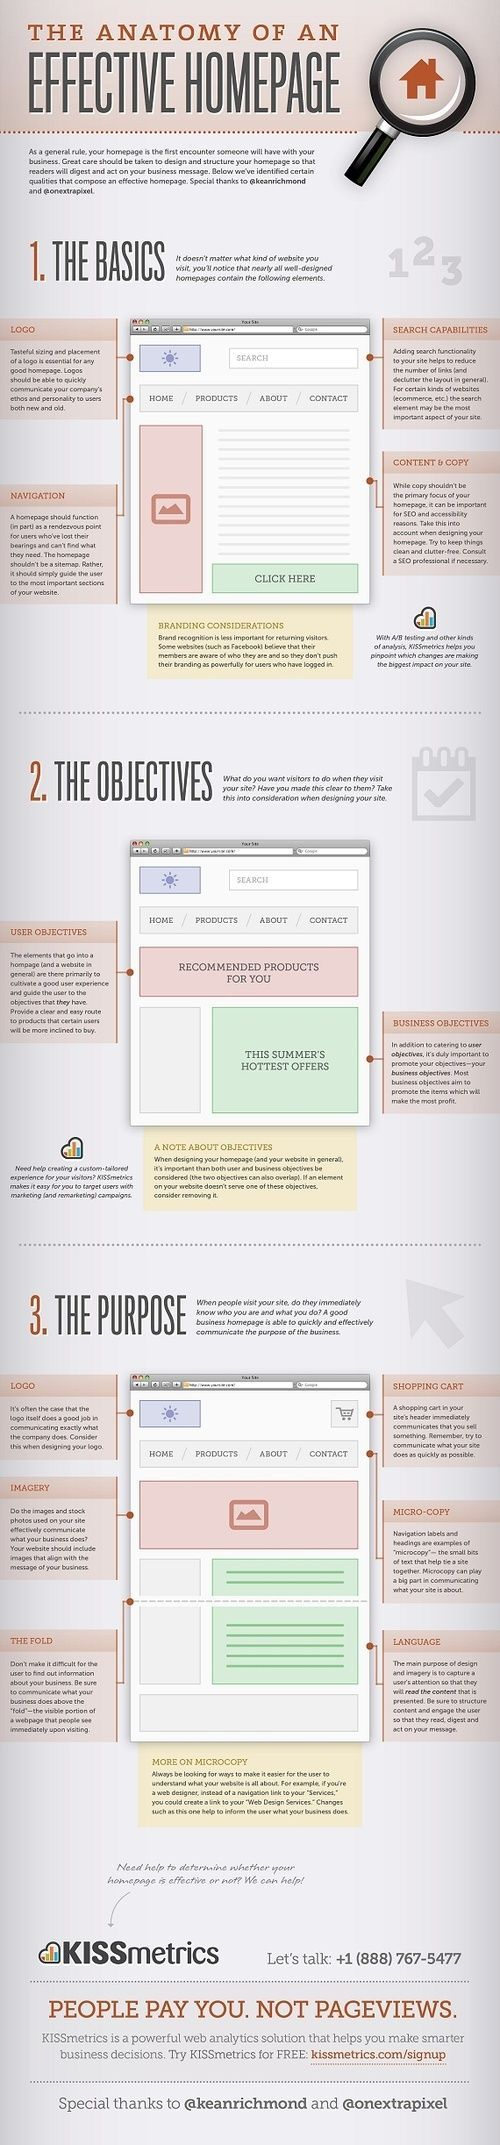 The Anatomy of an Effective Homepage | #Infographic #WebDesign